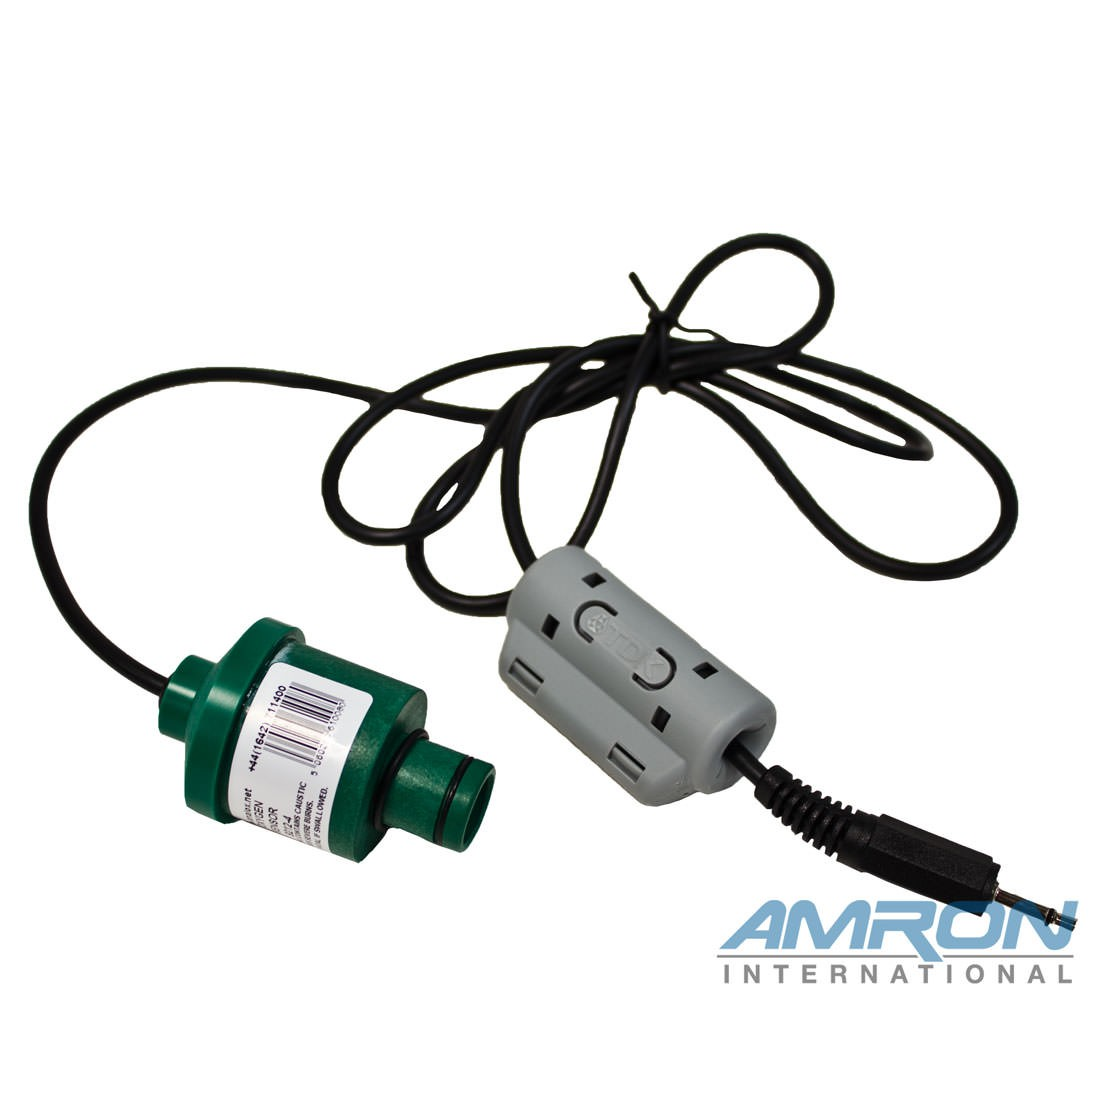 Analox Oxygen Sensor Including Hard Wired Lead with Jack Plug